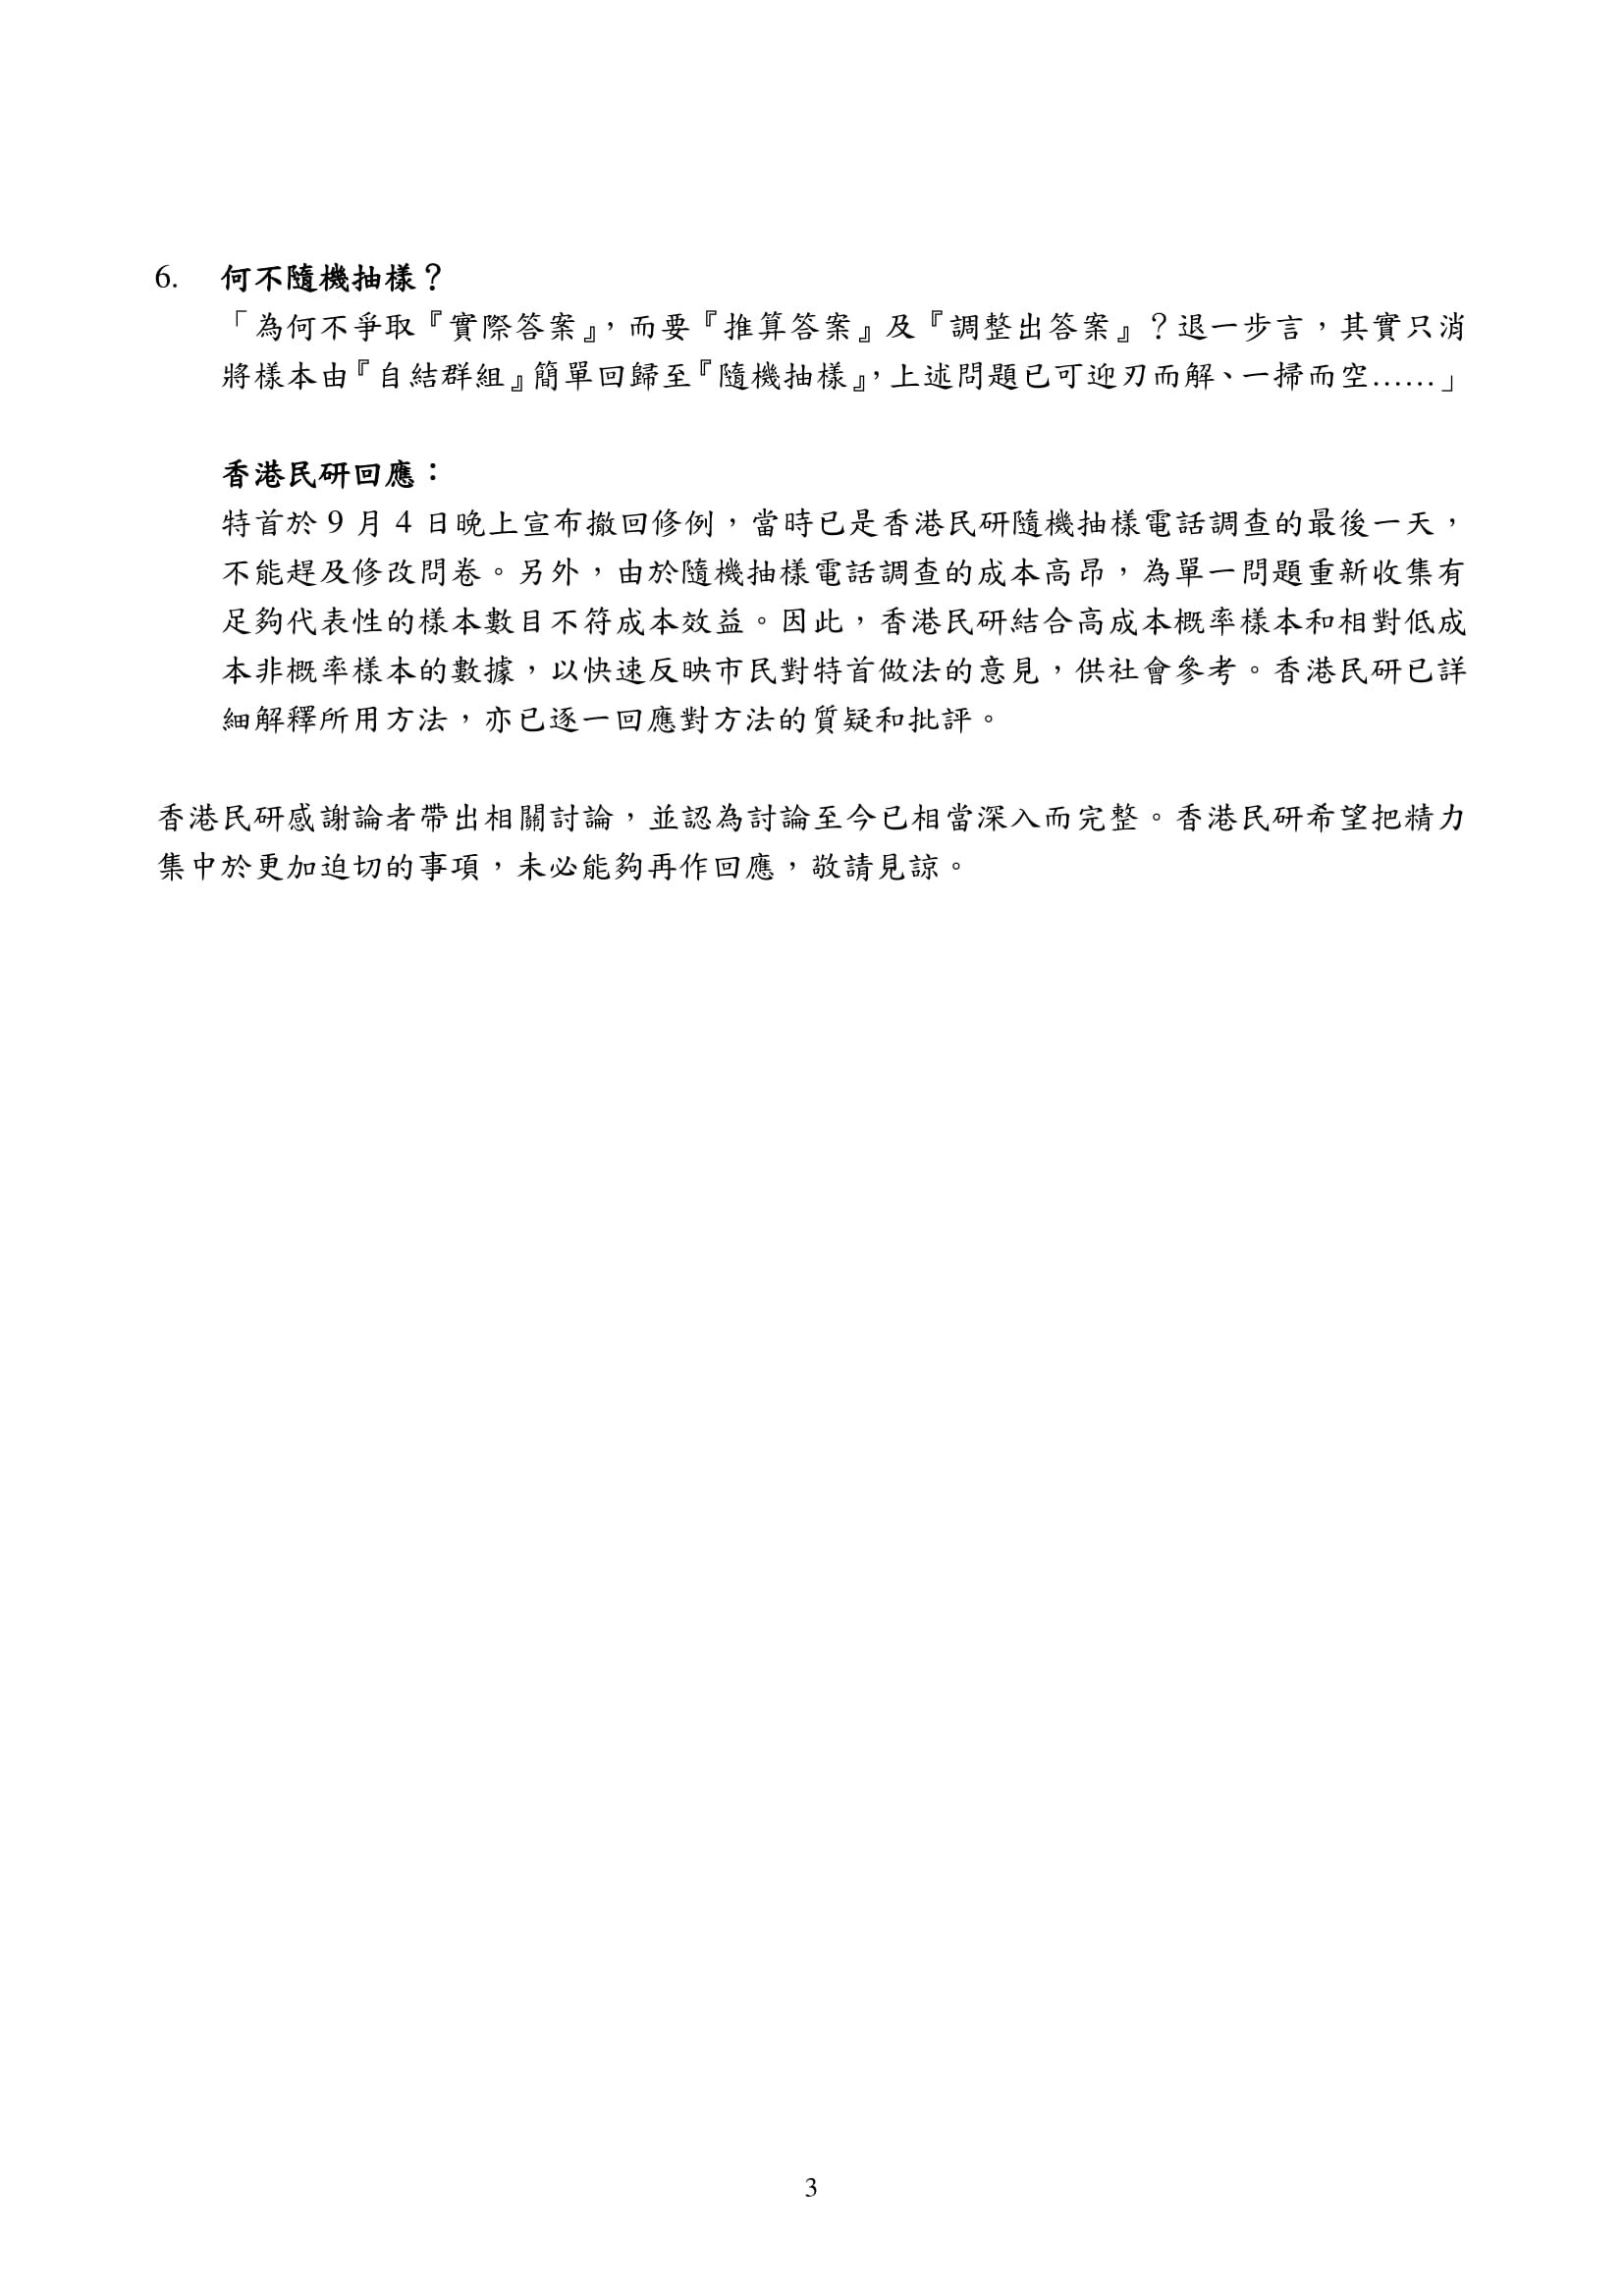 sp_rpt_2019sep10_CE_reply2nd_v1_clean-page-003.jpg